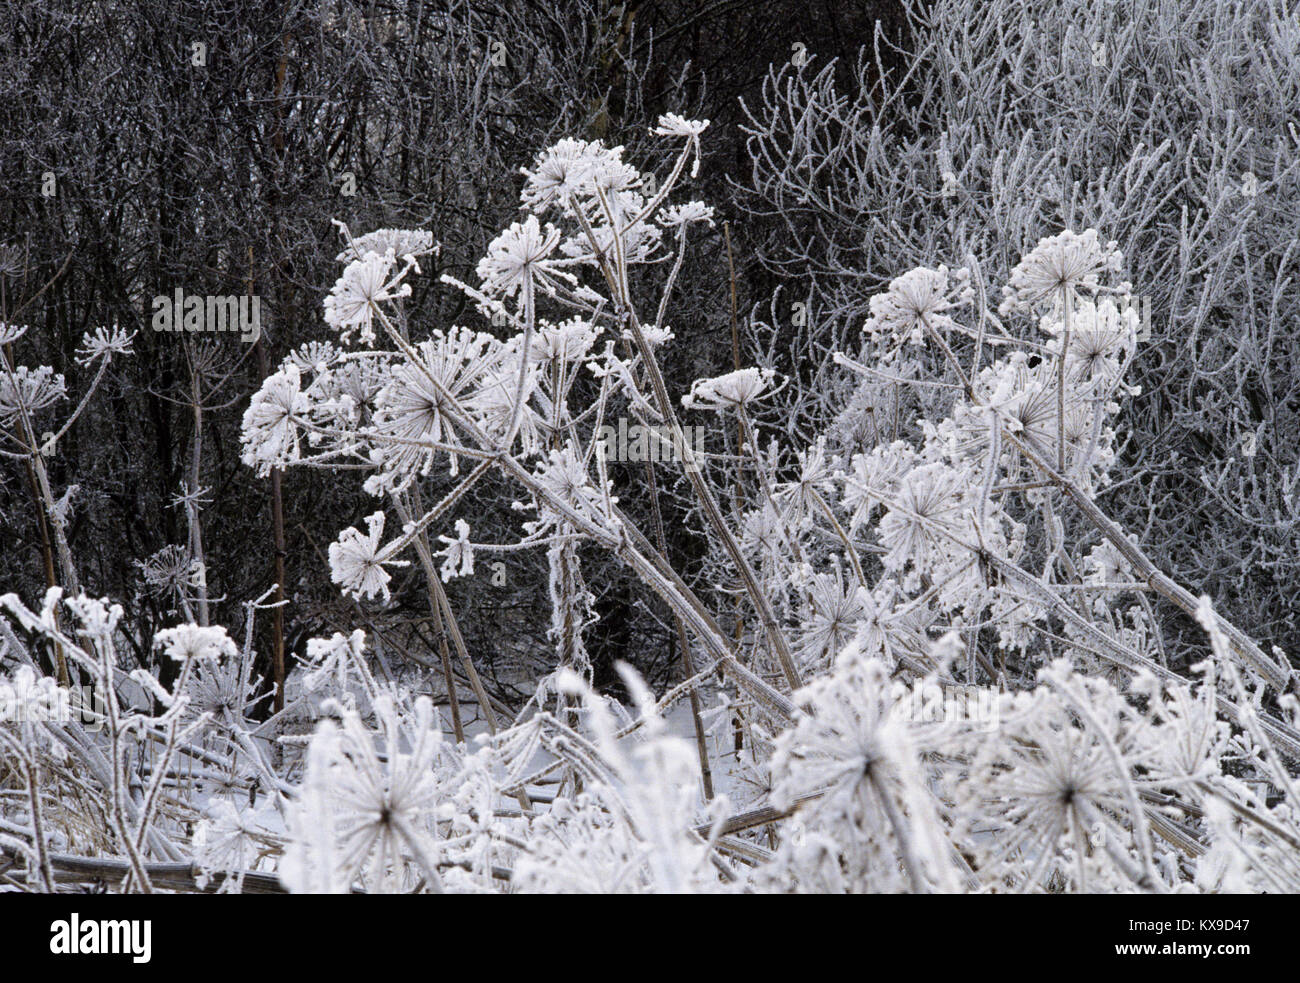 WINTER frost in summer´s remaining plants 2015 - Stock Image